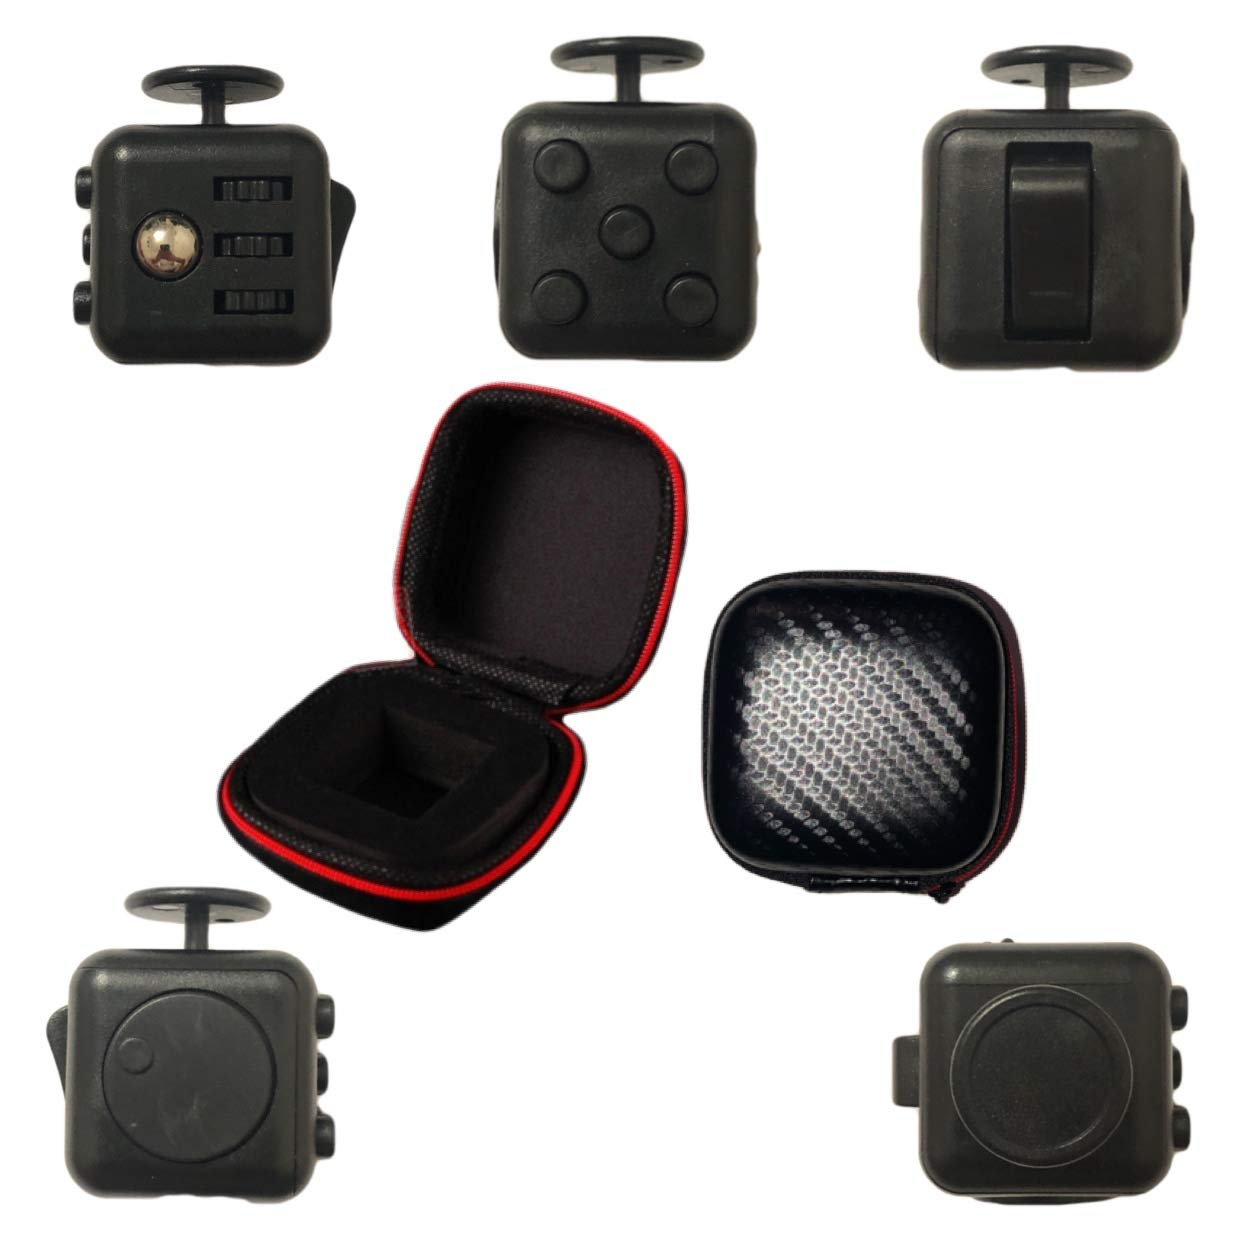 Monday Supplies Inc. Fidget Cube Toy - Premium Quality Stress Relief, ADHD and Anxiety Toy, Autism Calming Toy - with Exclusionary Zipper Case - Matte Black China